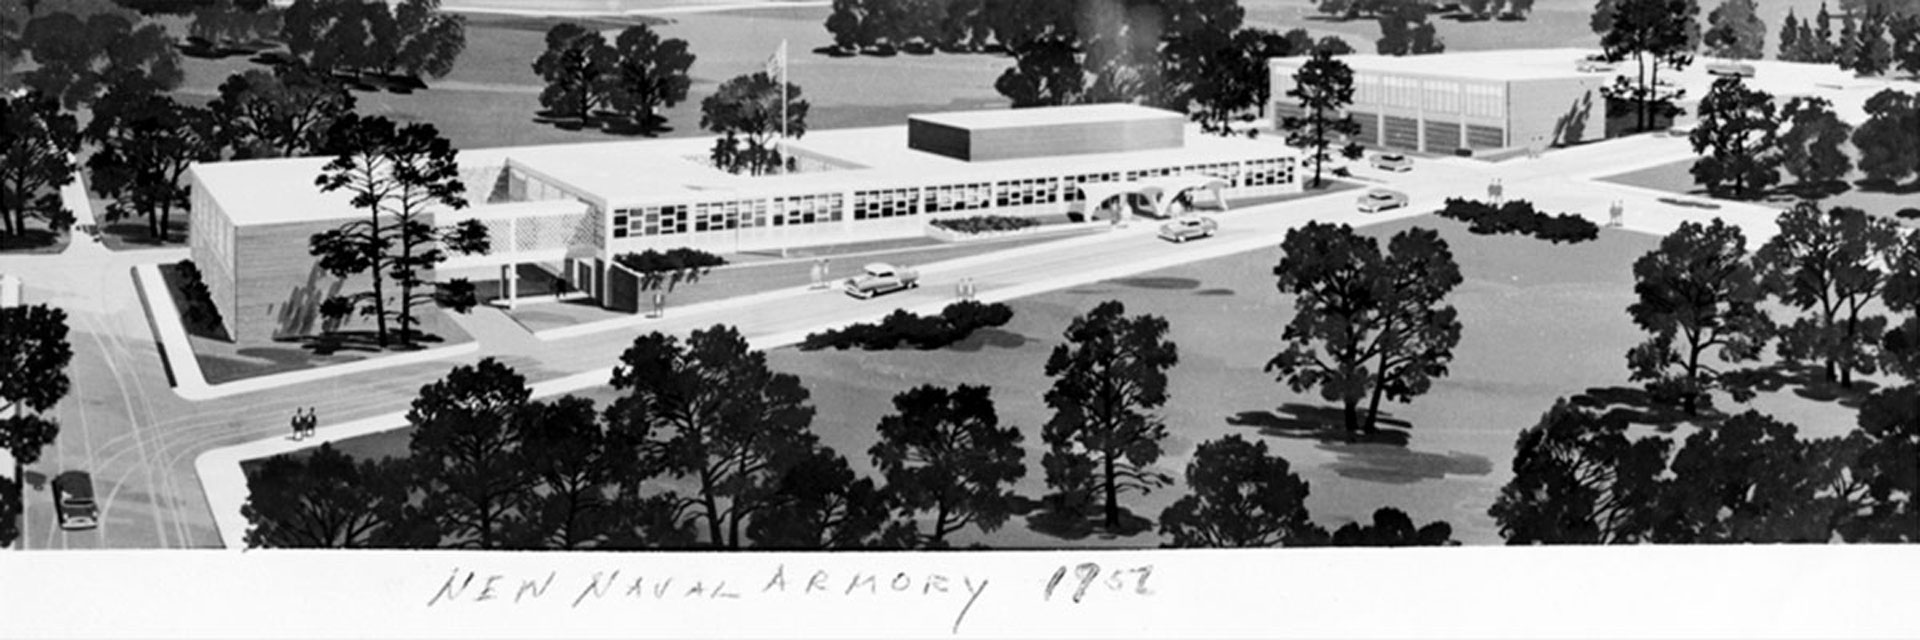 1952 photo of naval armory.